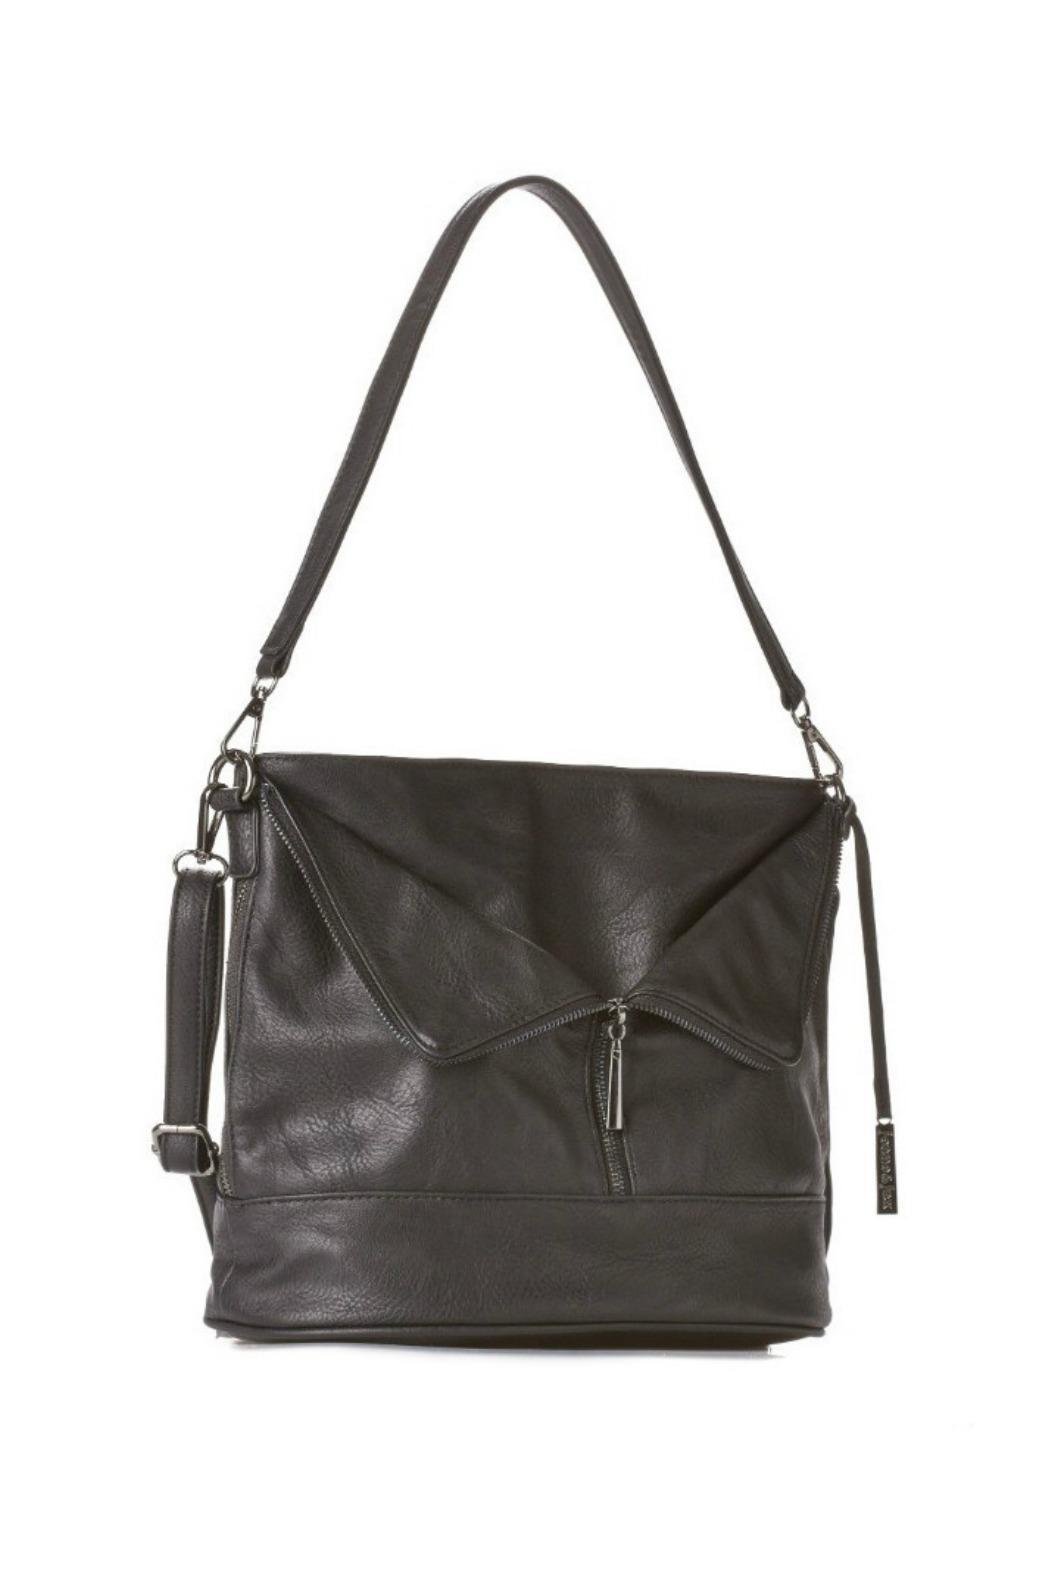 601e7994edf8 Jeane   Jax Zipfold Hobo Bag from Canada by Real Spirit Apparel ...